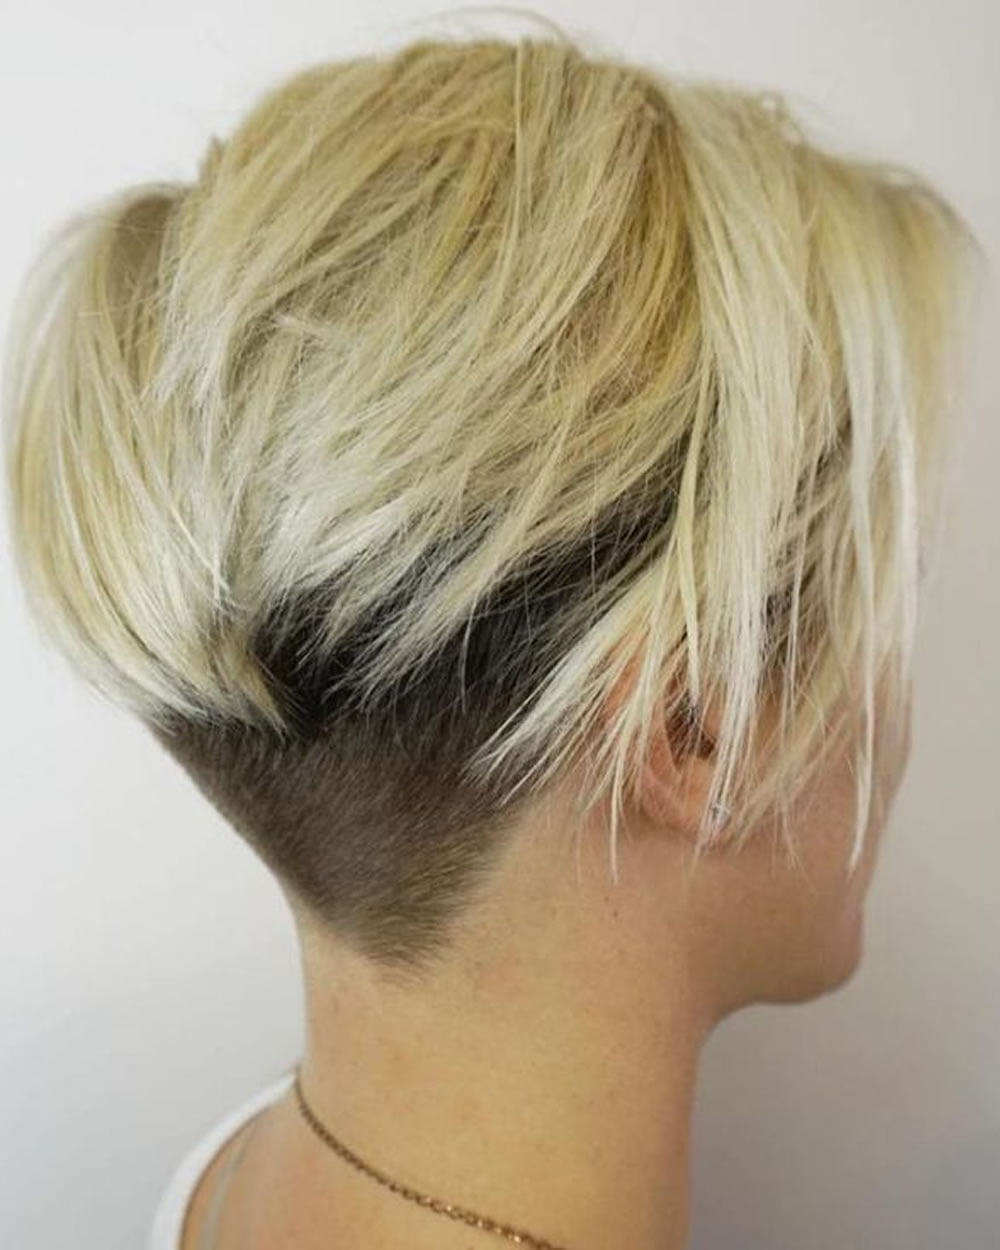 Extreme Nape Shaving Bob Haircuts Hairstyles For Women Page 4